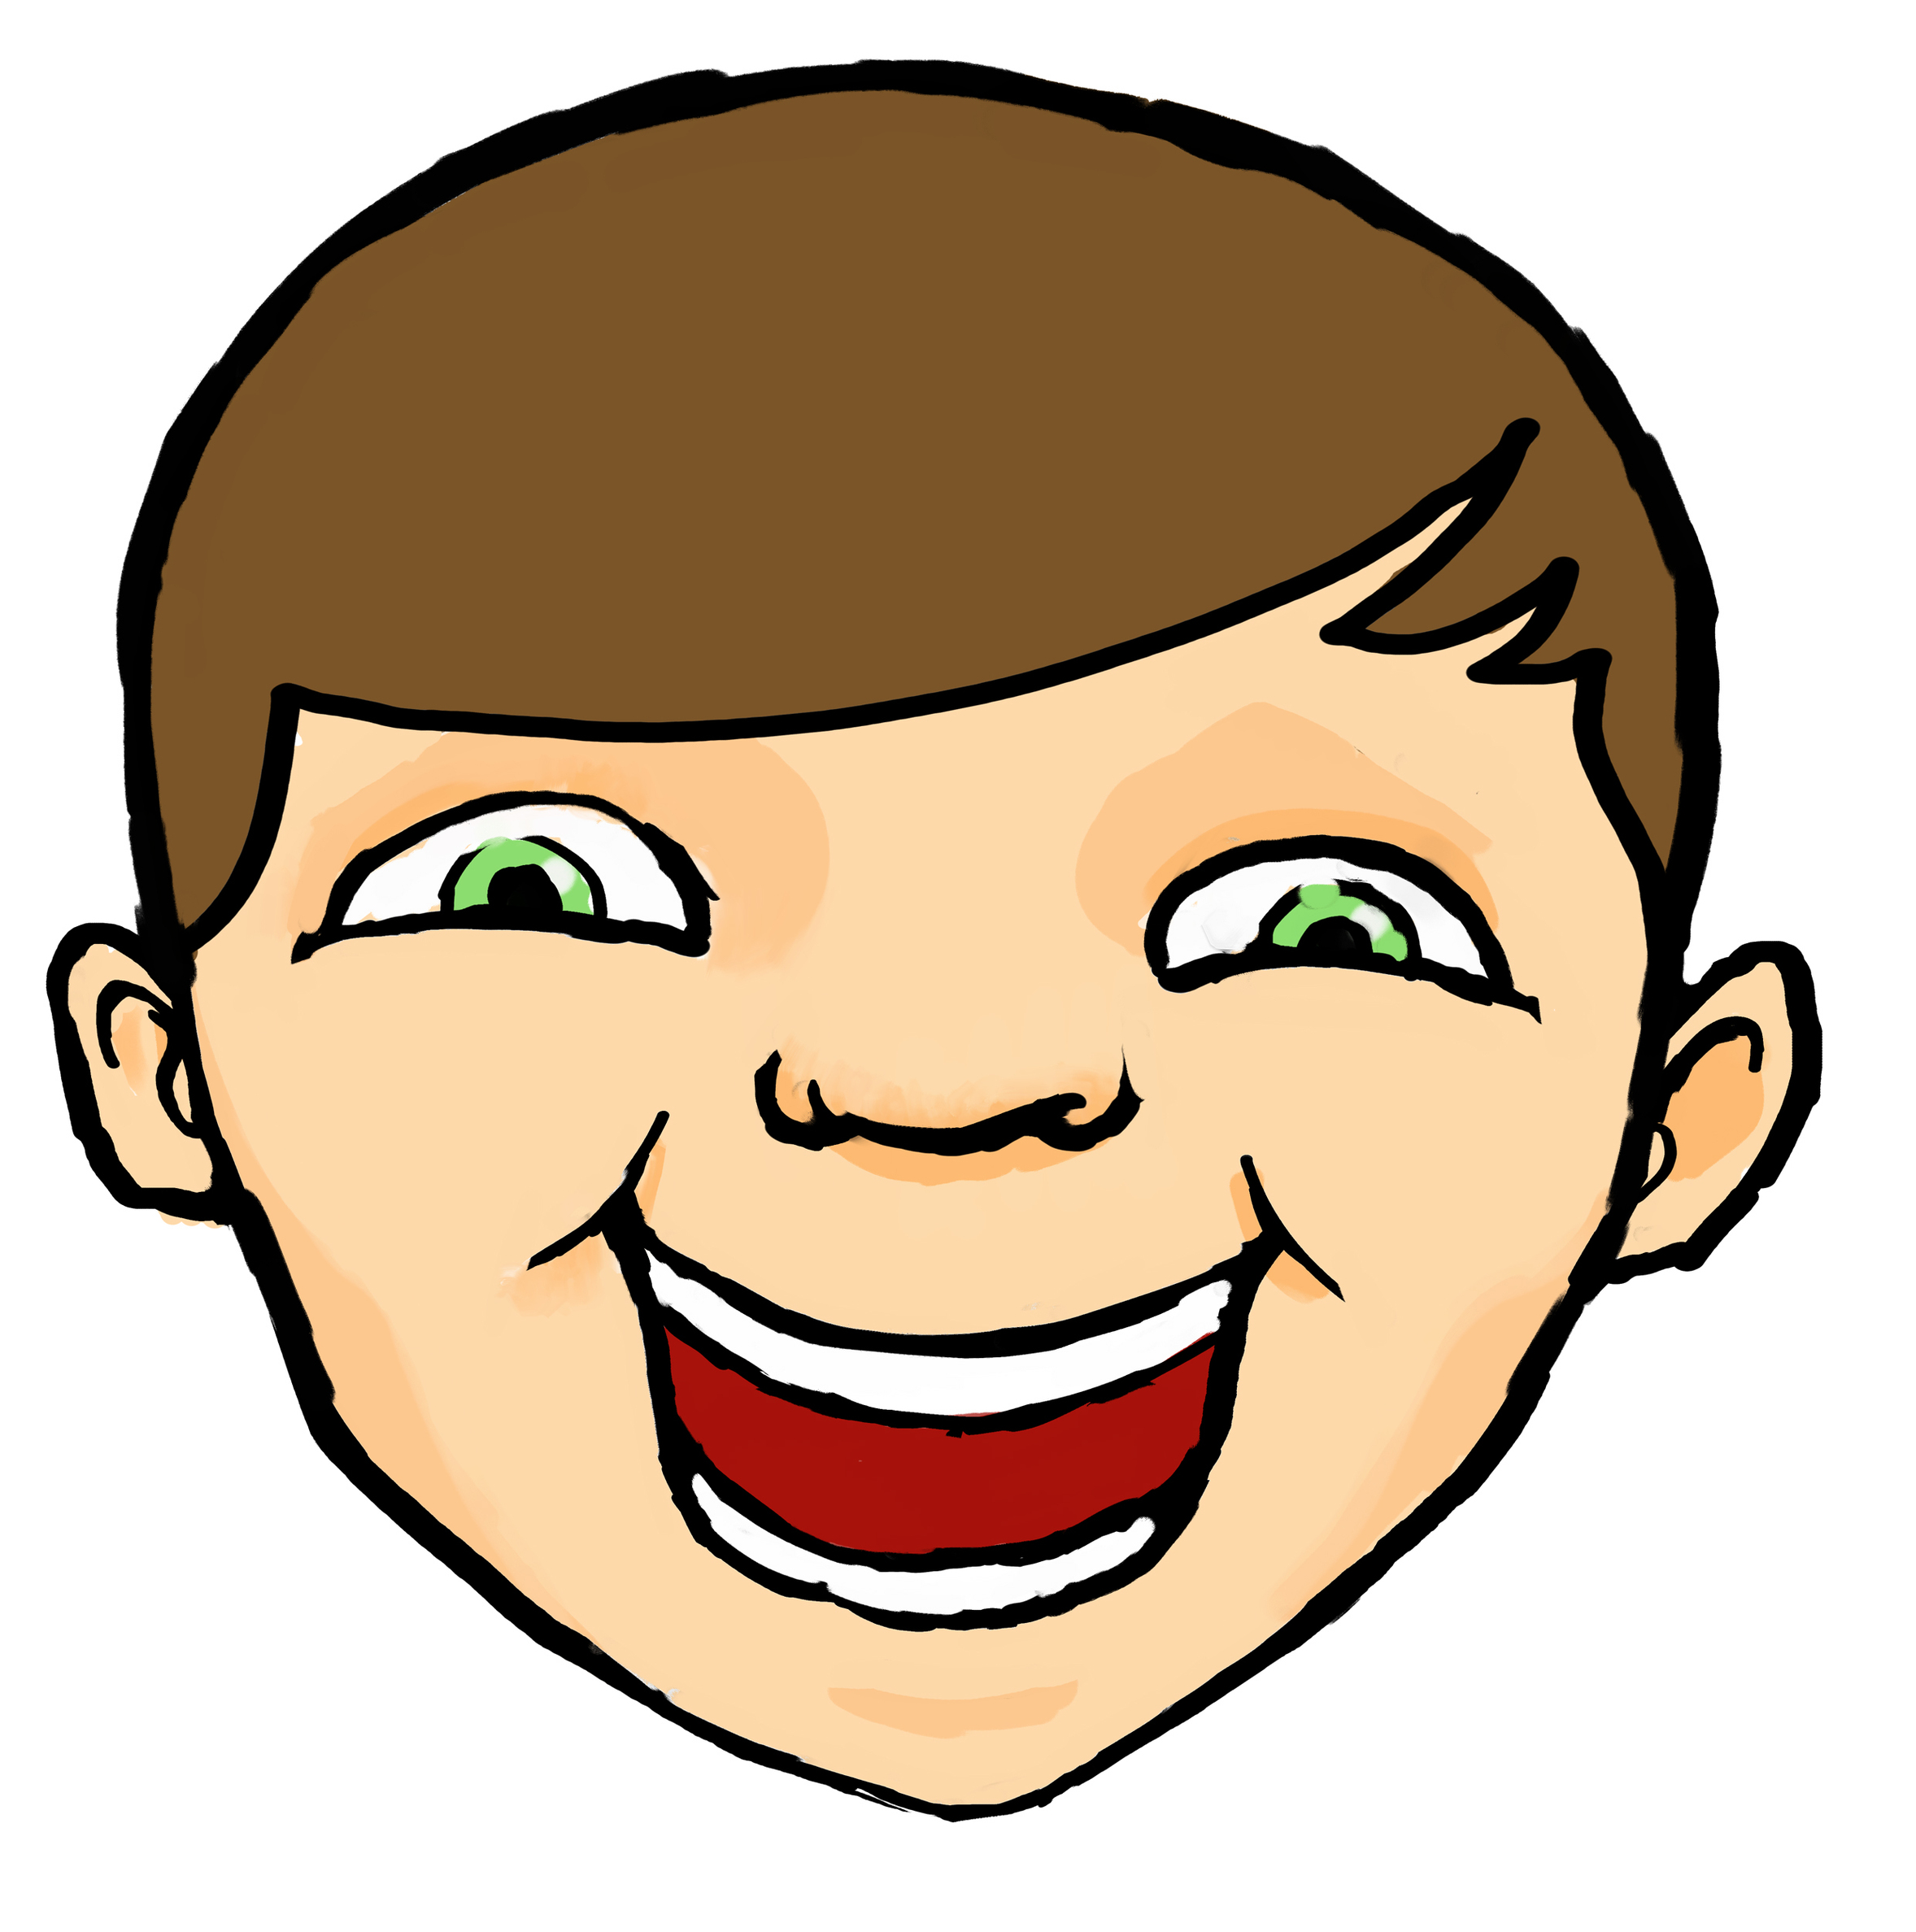 Free clipart laughing face banner free library Free Clip art of Laughing Clipart #4600 Best Laughing Smiley Face ... banner free library